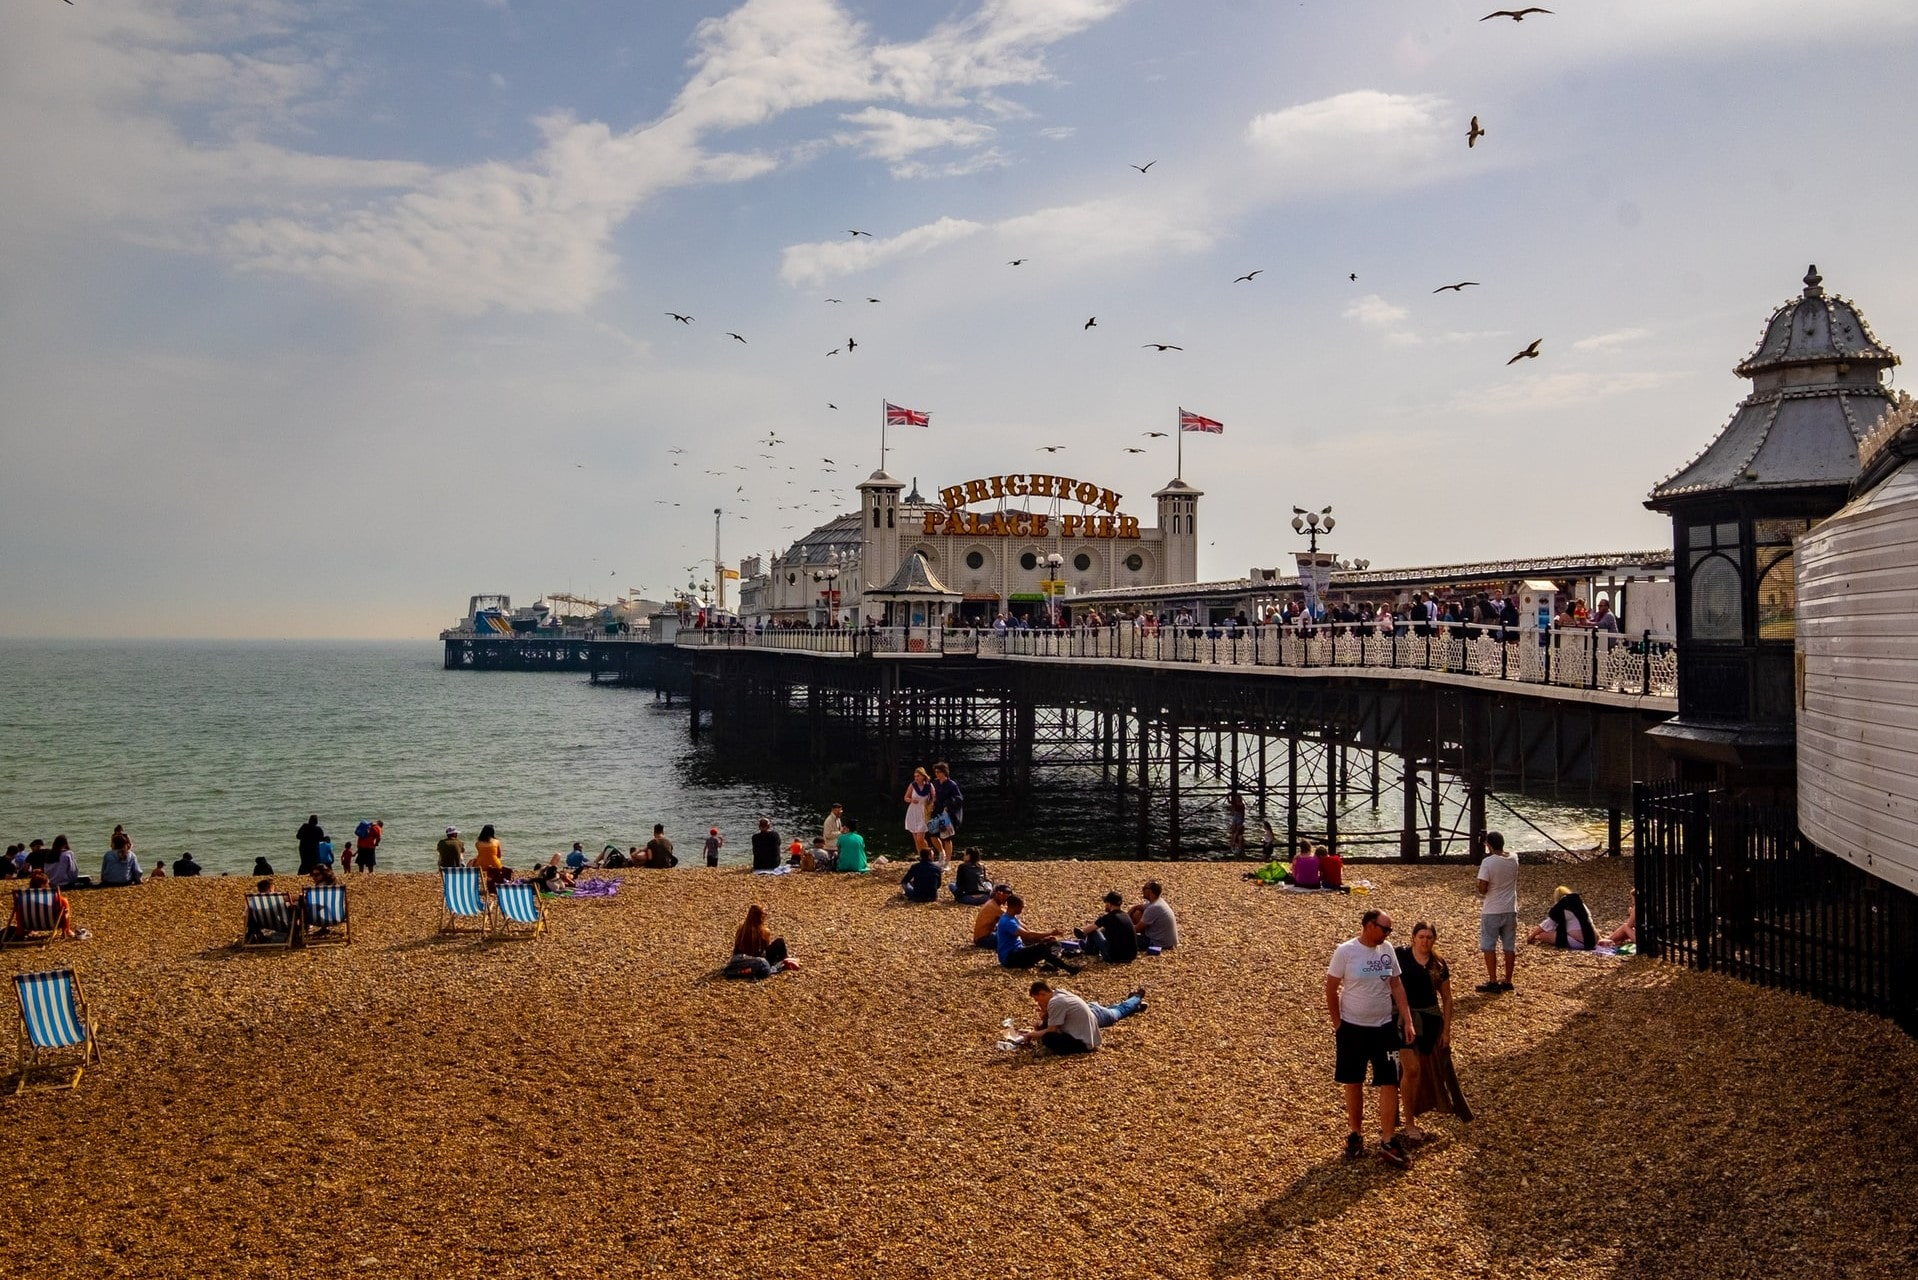 people-lounging-on-pebble-beach-by-the-seaside-beside-brighton-pier-while-seagulls-fly-overhead-best-uk-city-breaks-for-couples